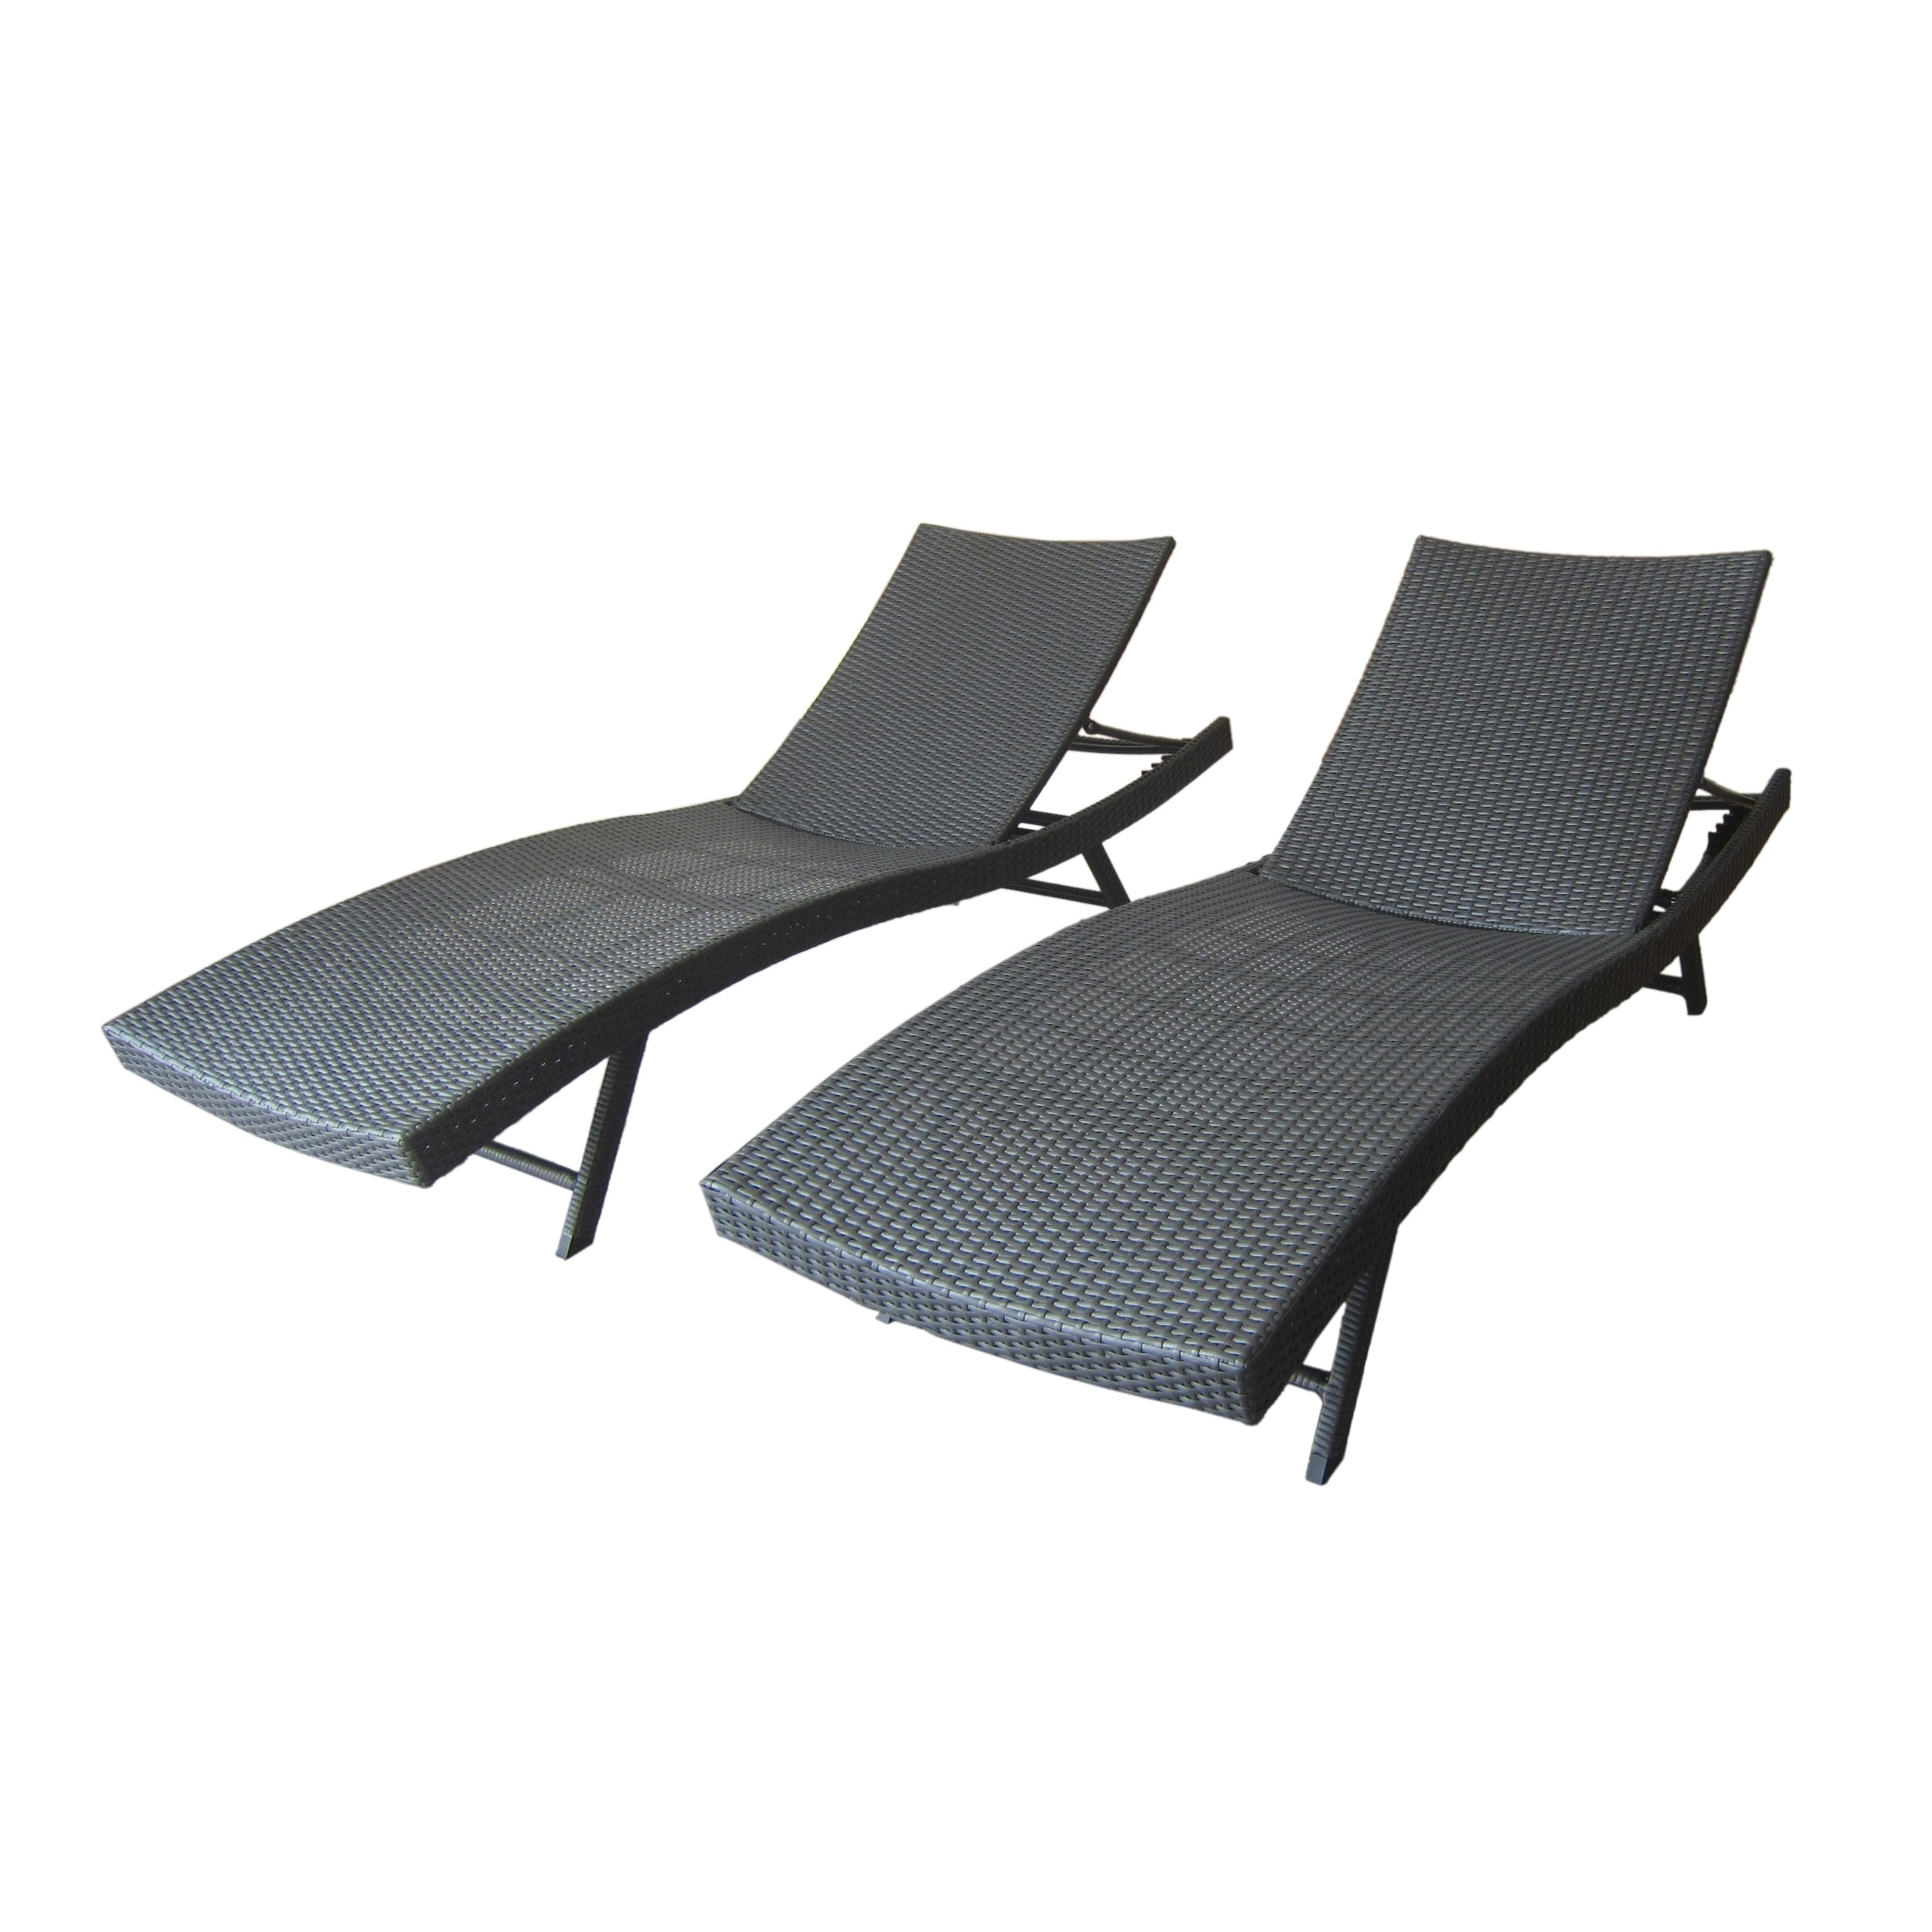 Outdoor Chaise Lounges Online At Our Best